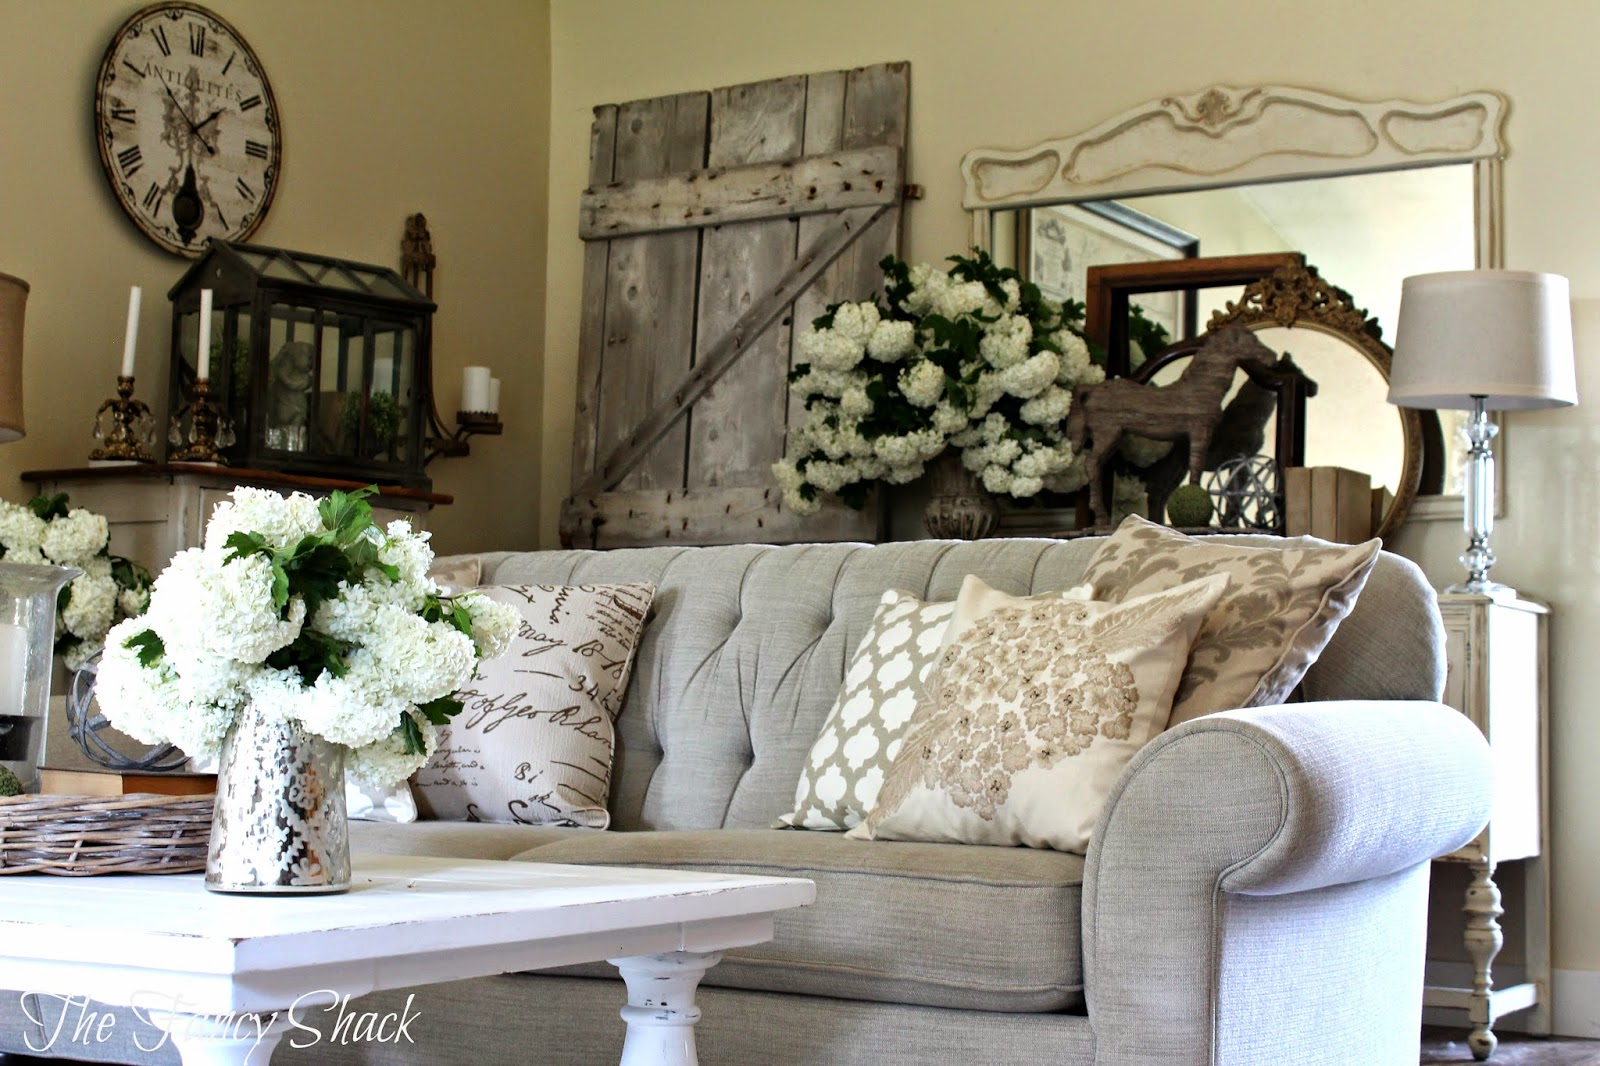 The Fancy Shack: New Living Room Furniture--